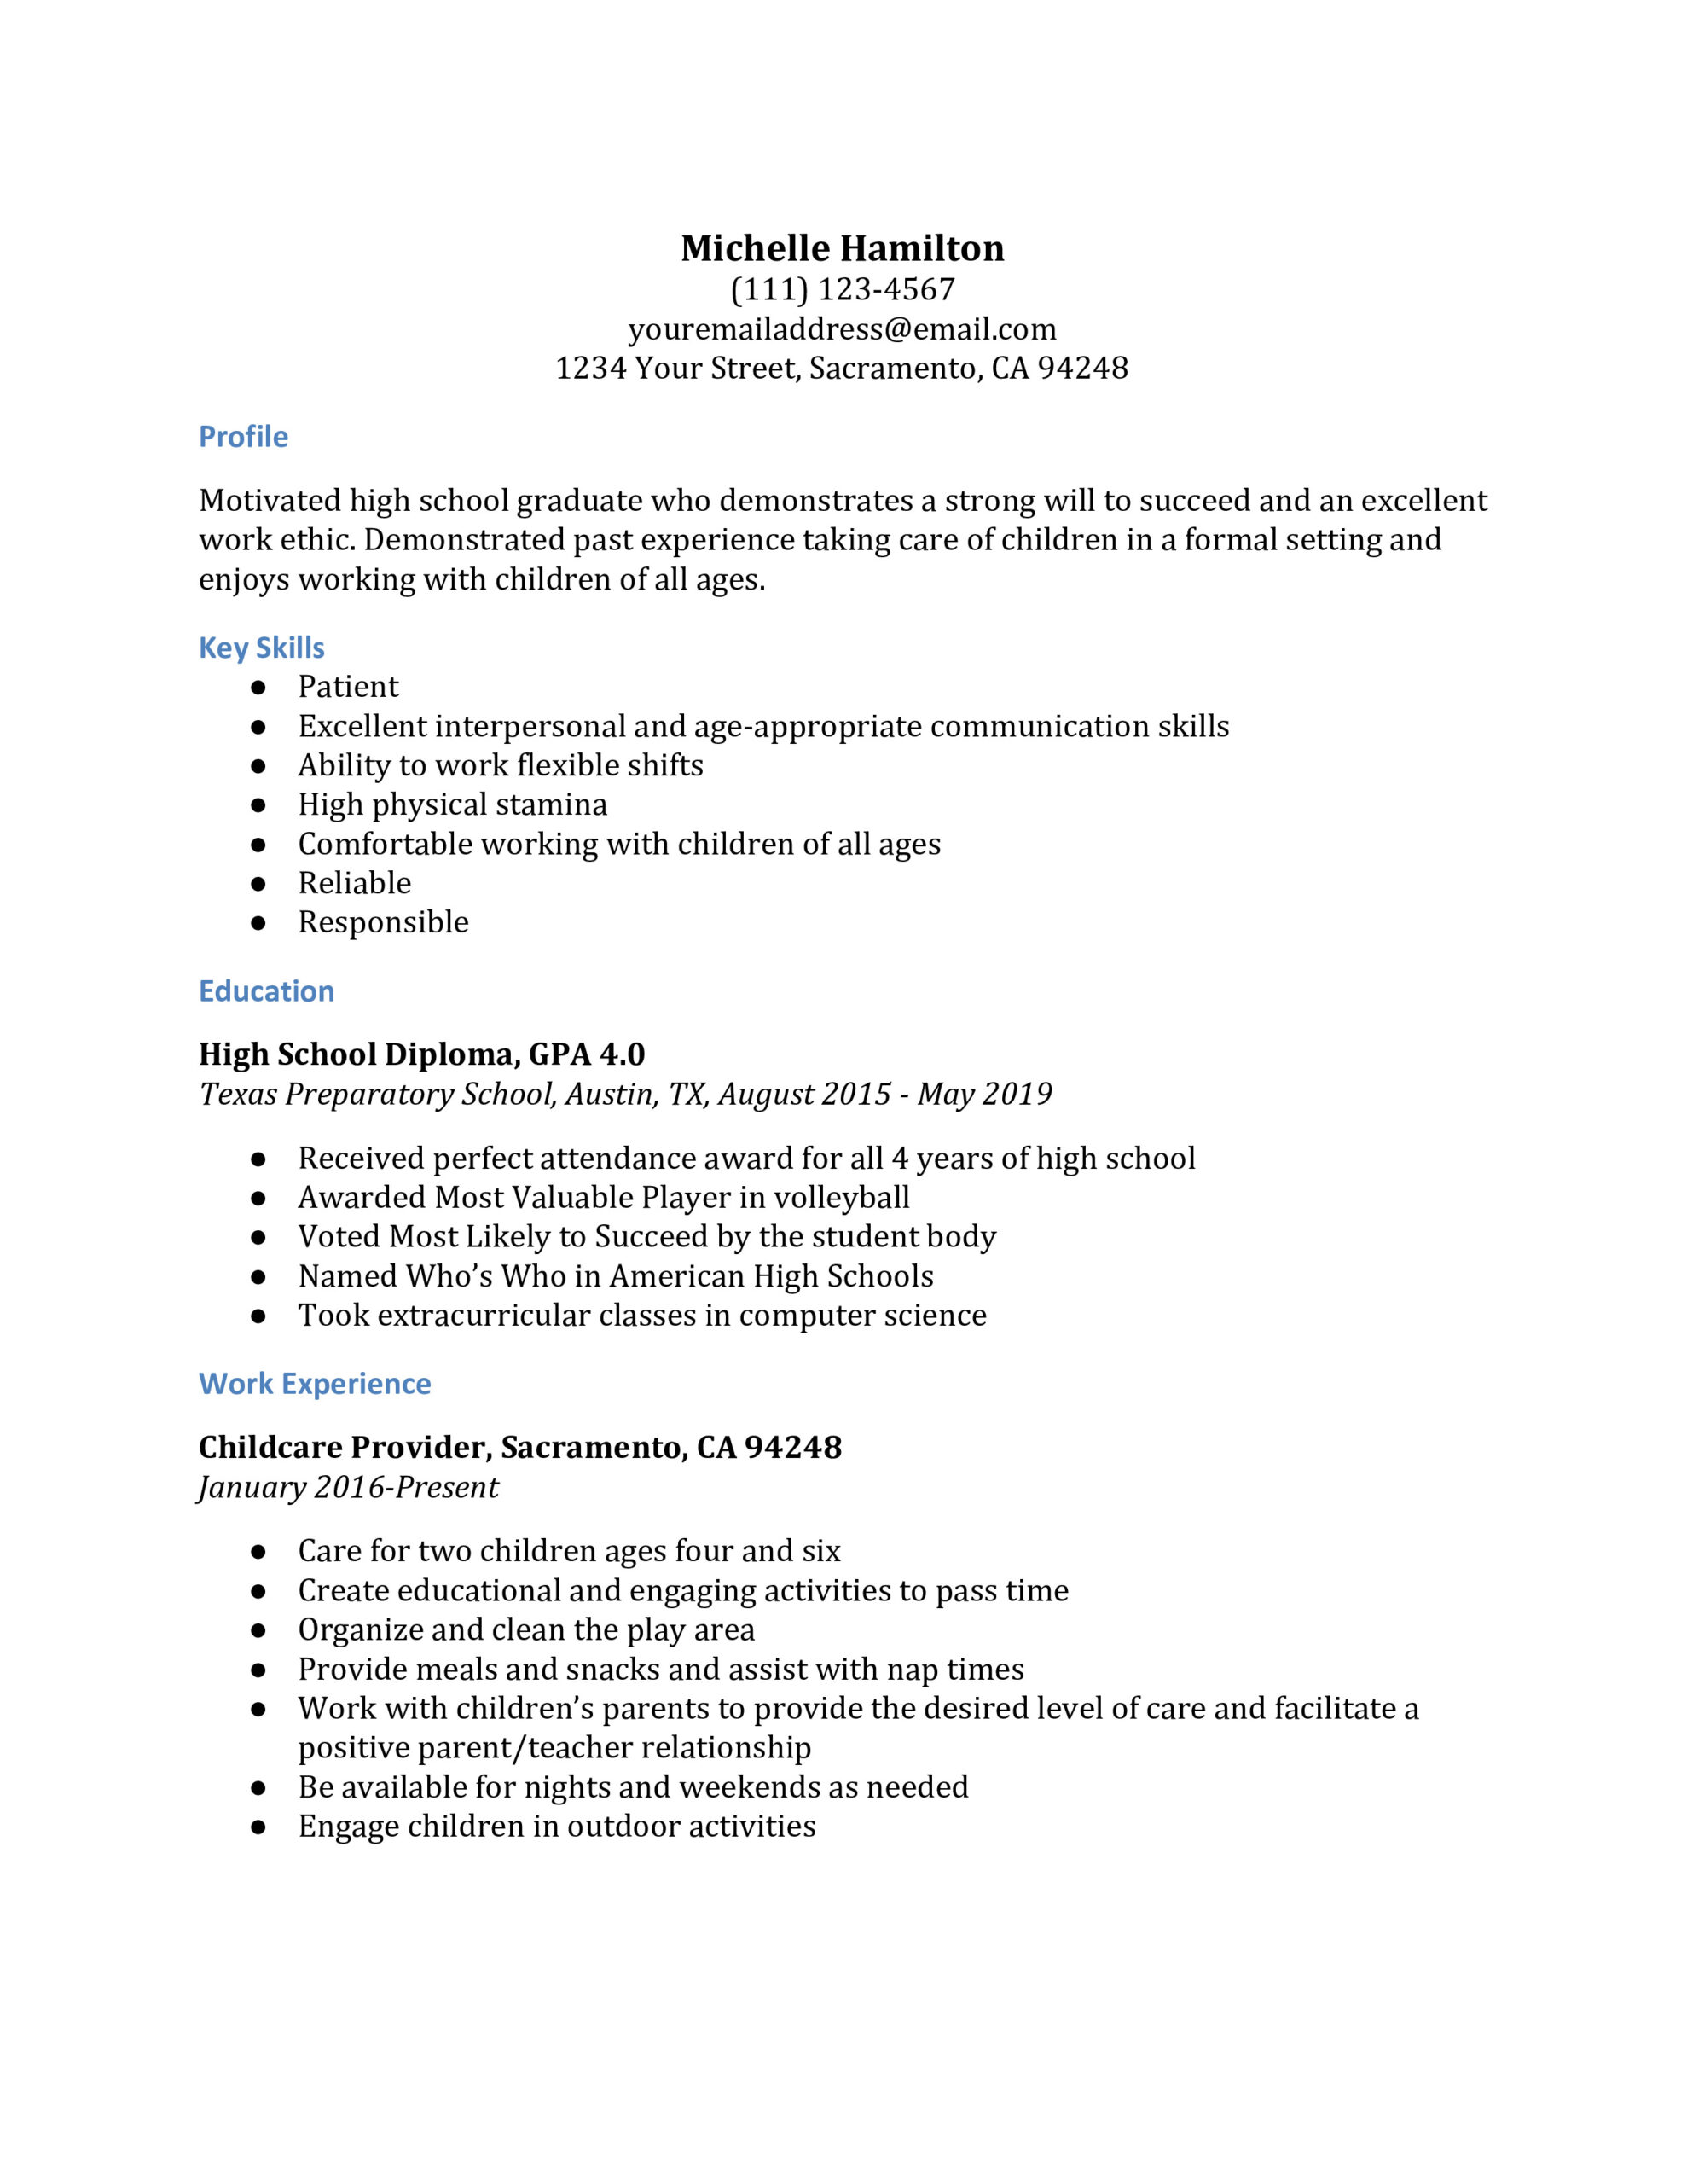 high school resume examples resumebuilder student skills and abilities cpa candidate Resume Student Resume Skills And Abilities Examples